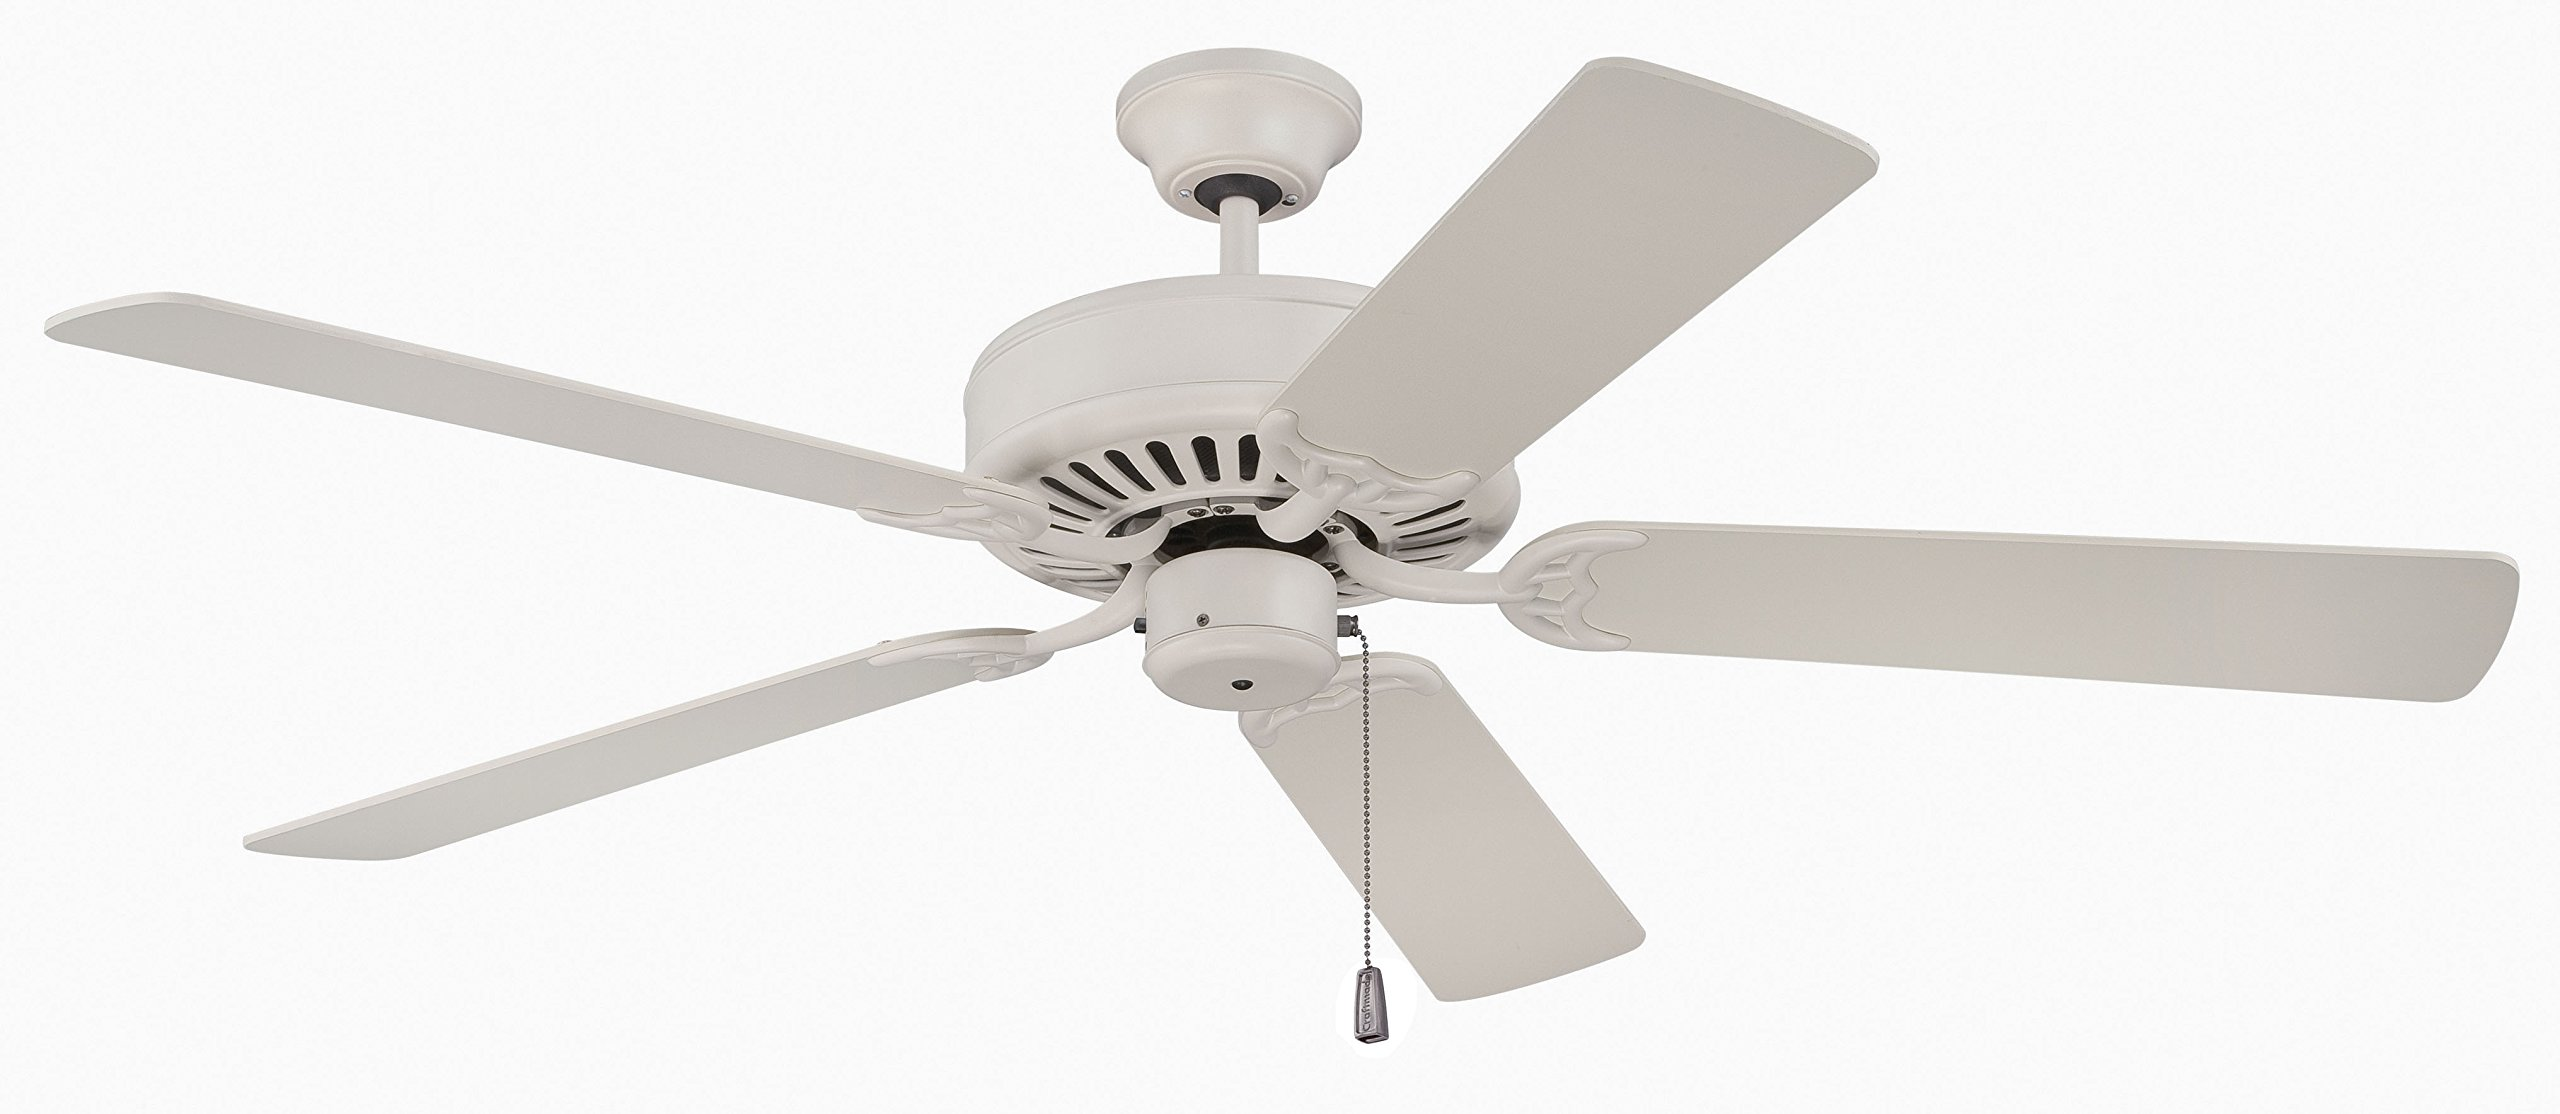 Craftmade K11133 Ceiling Fan Motor with Blades Included, 52''